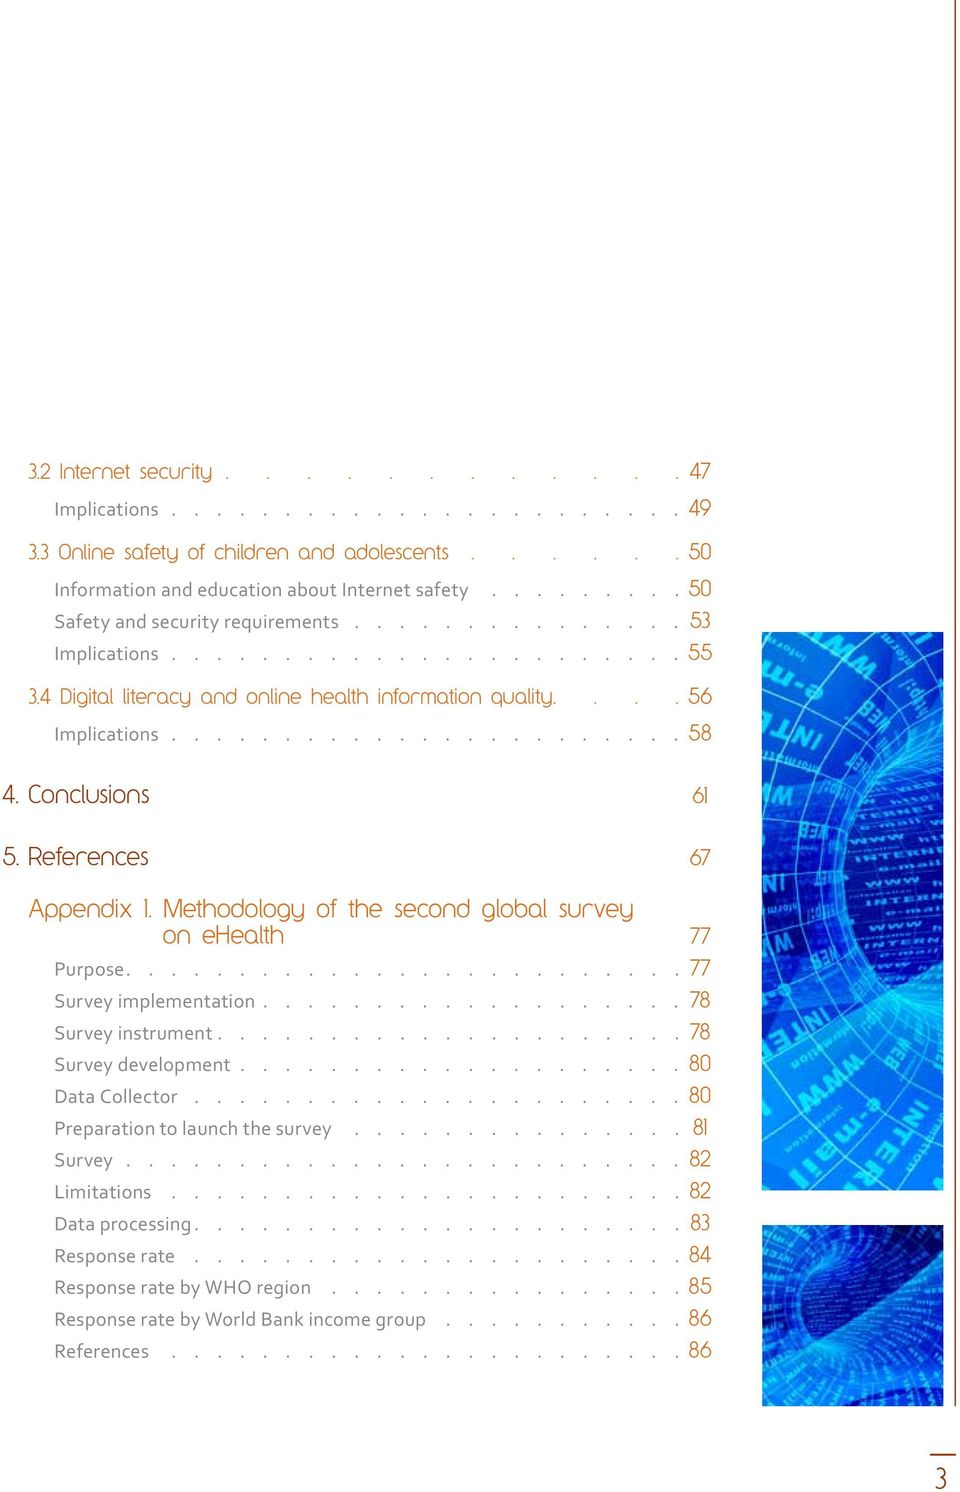 References 67 Appendix 1. Methodology of the second global survey on ehealth 77 Purpose......................... 77 Survey implementation................... 78 Survey instrument.